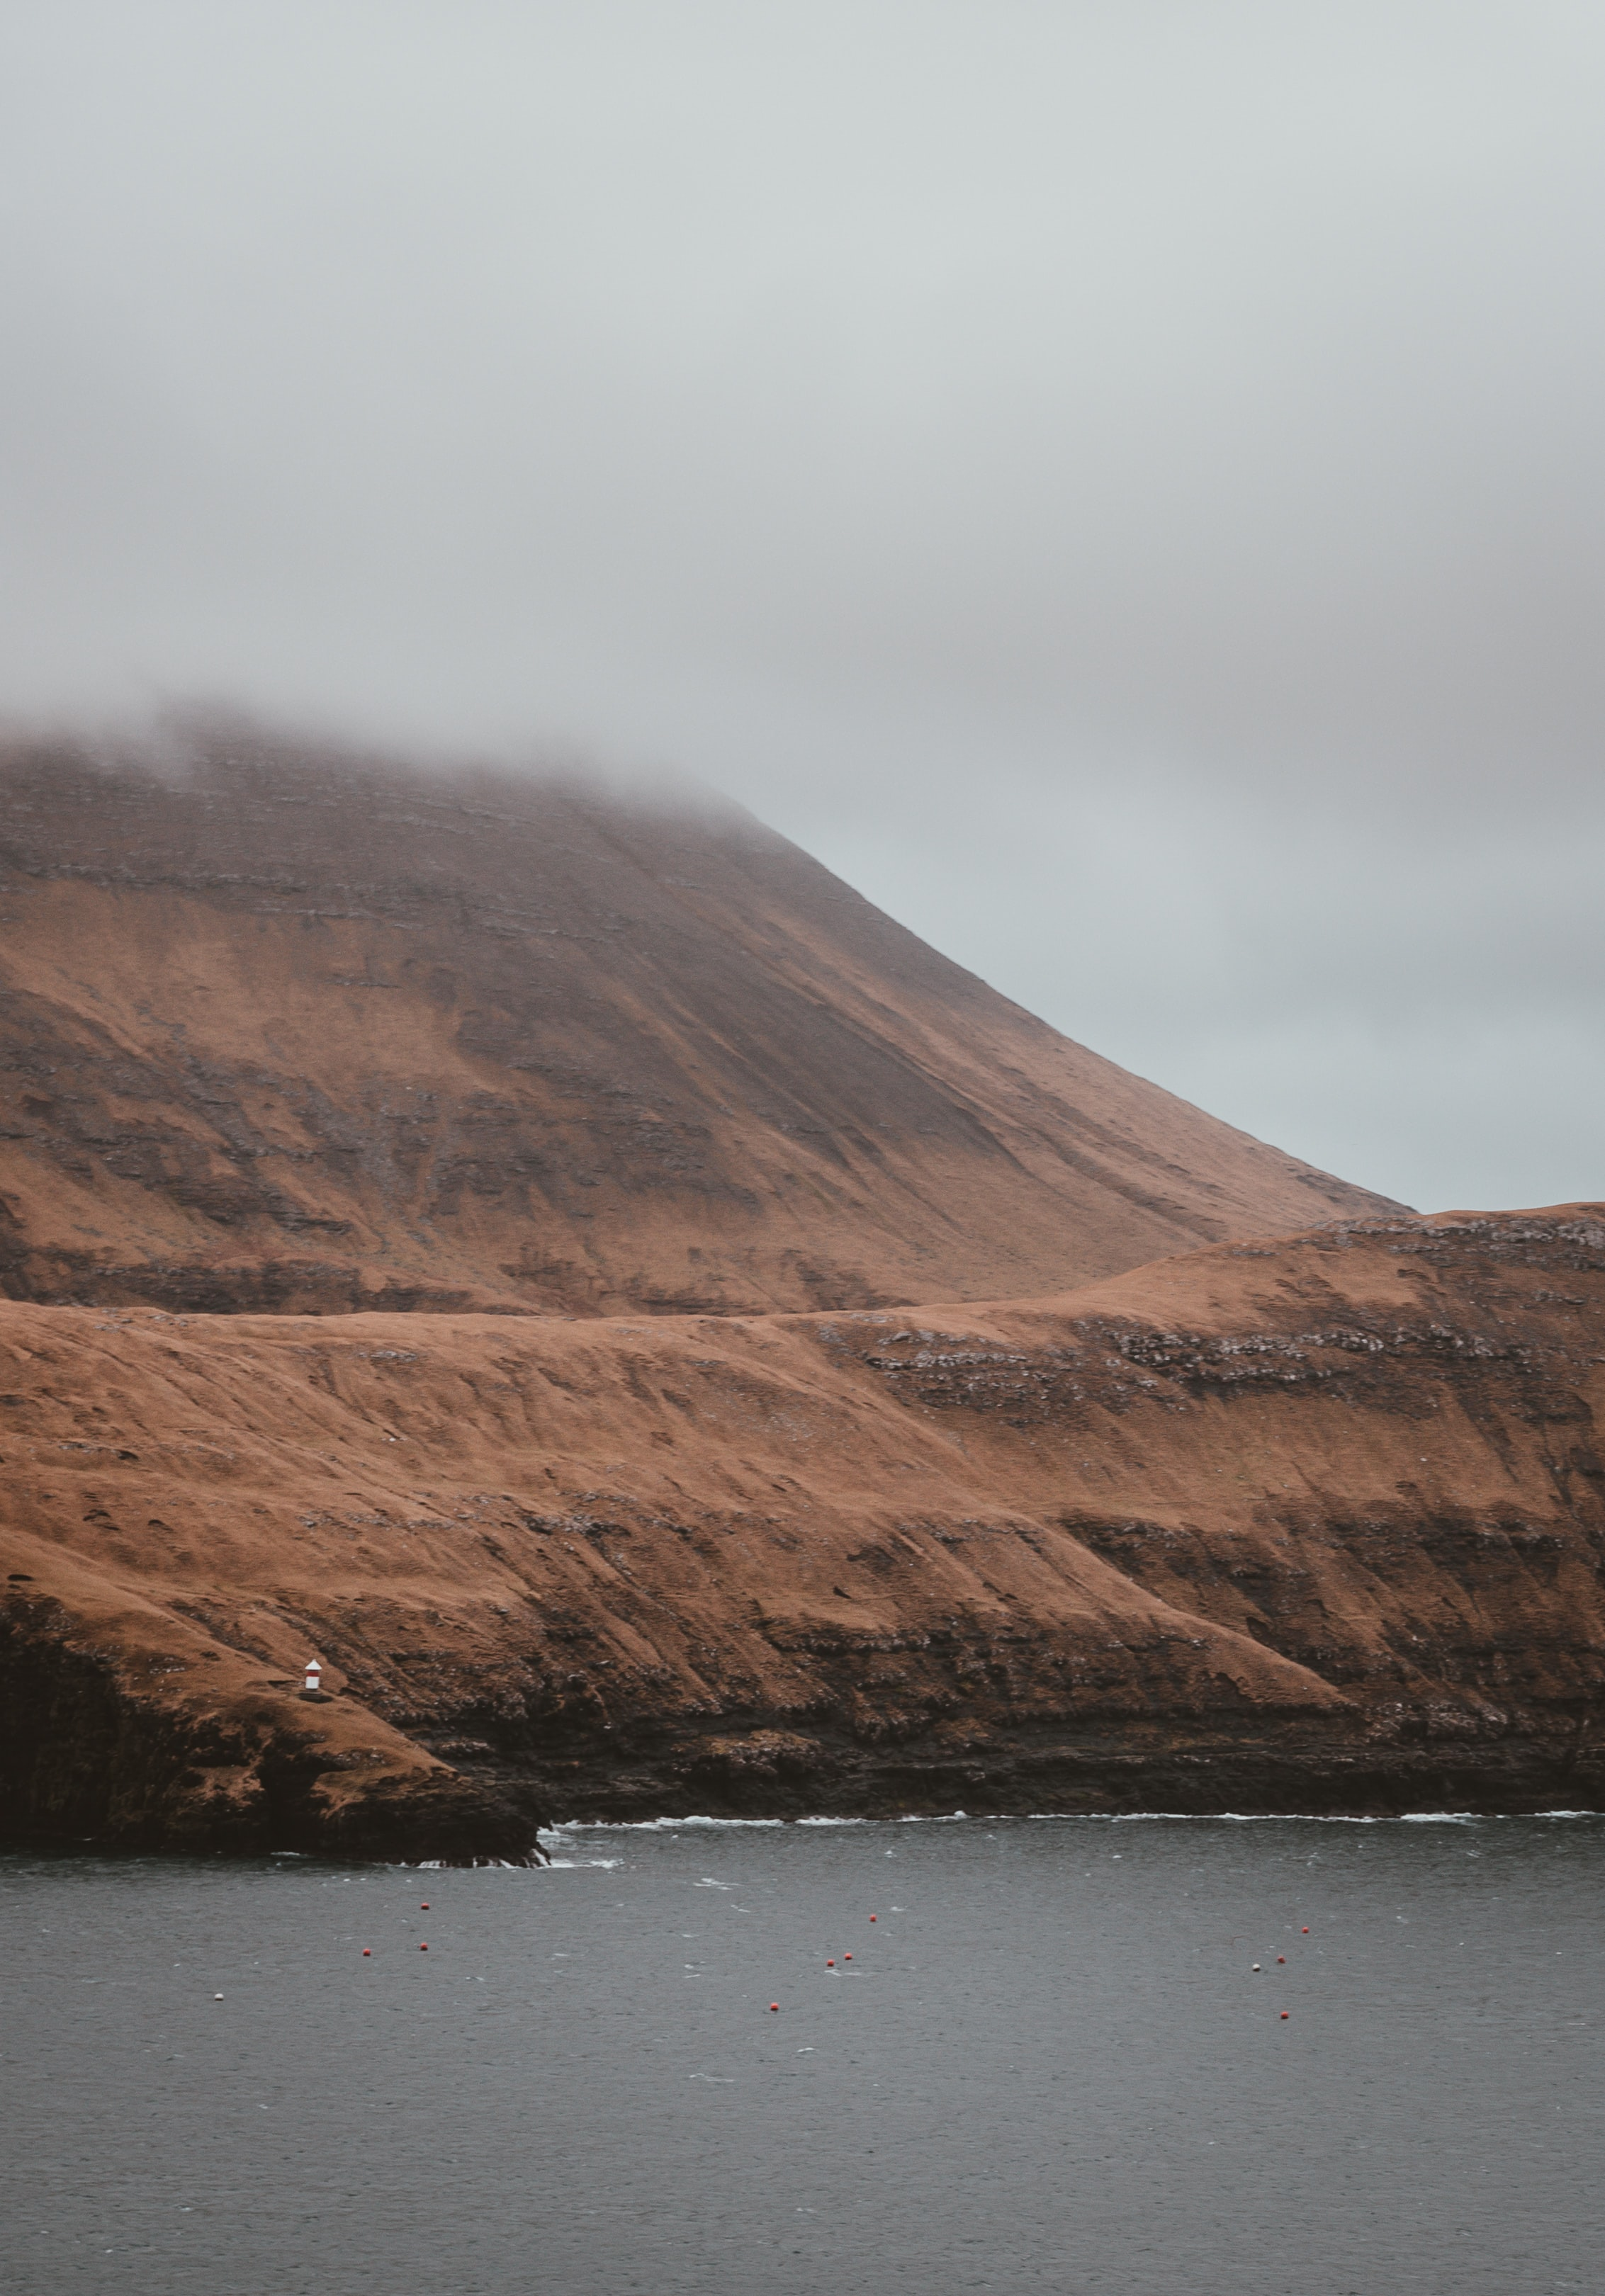 brown mountain near body of water under cloudy sky